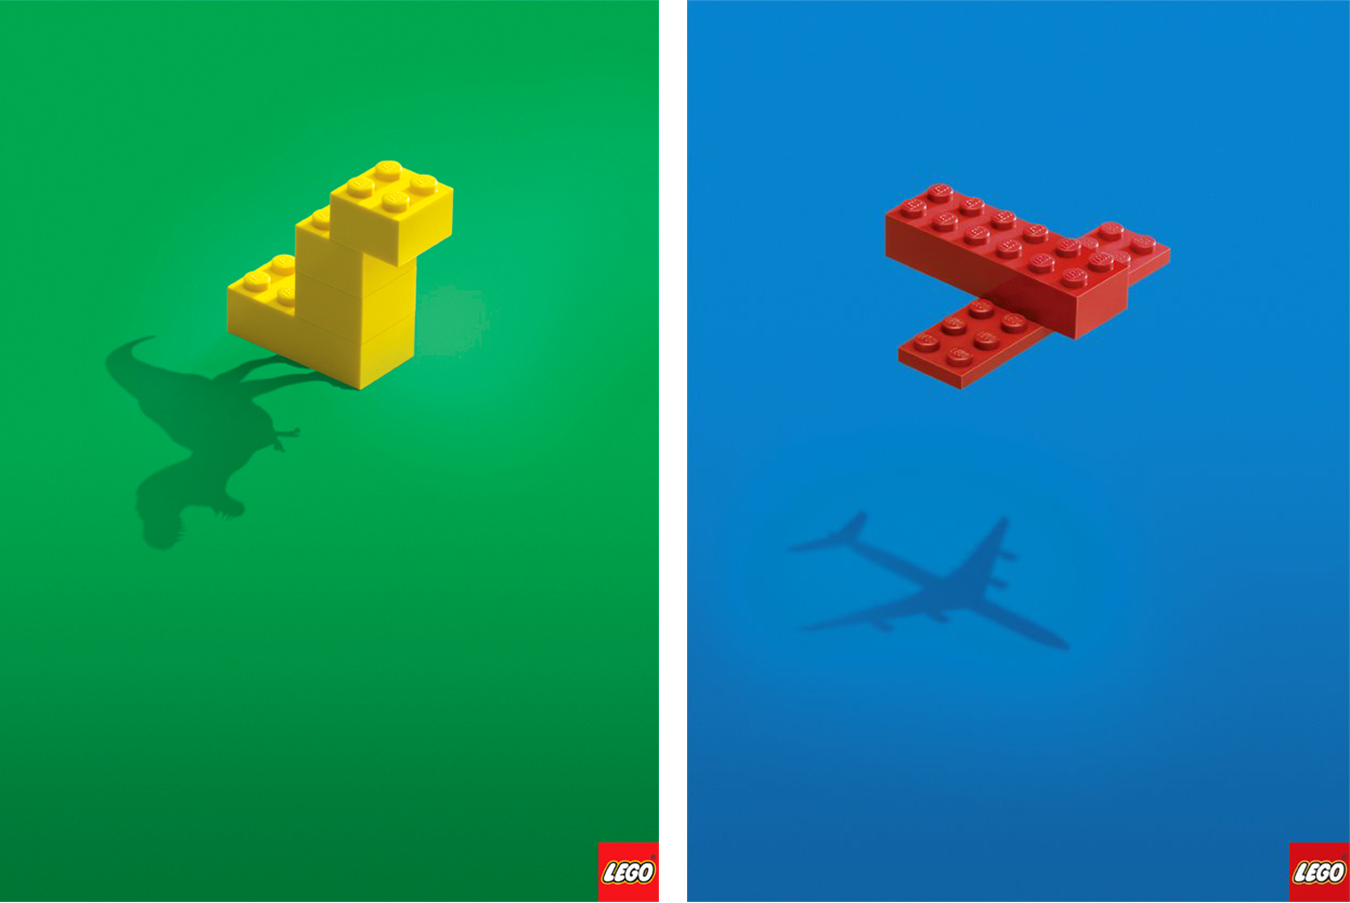 lego-minimal-ads.png